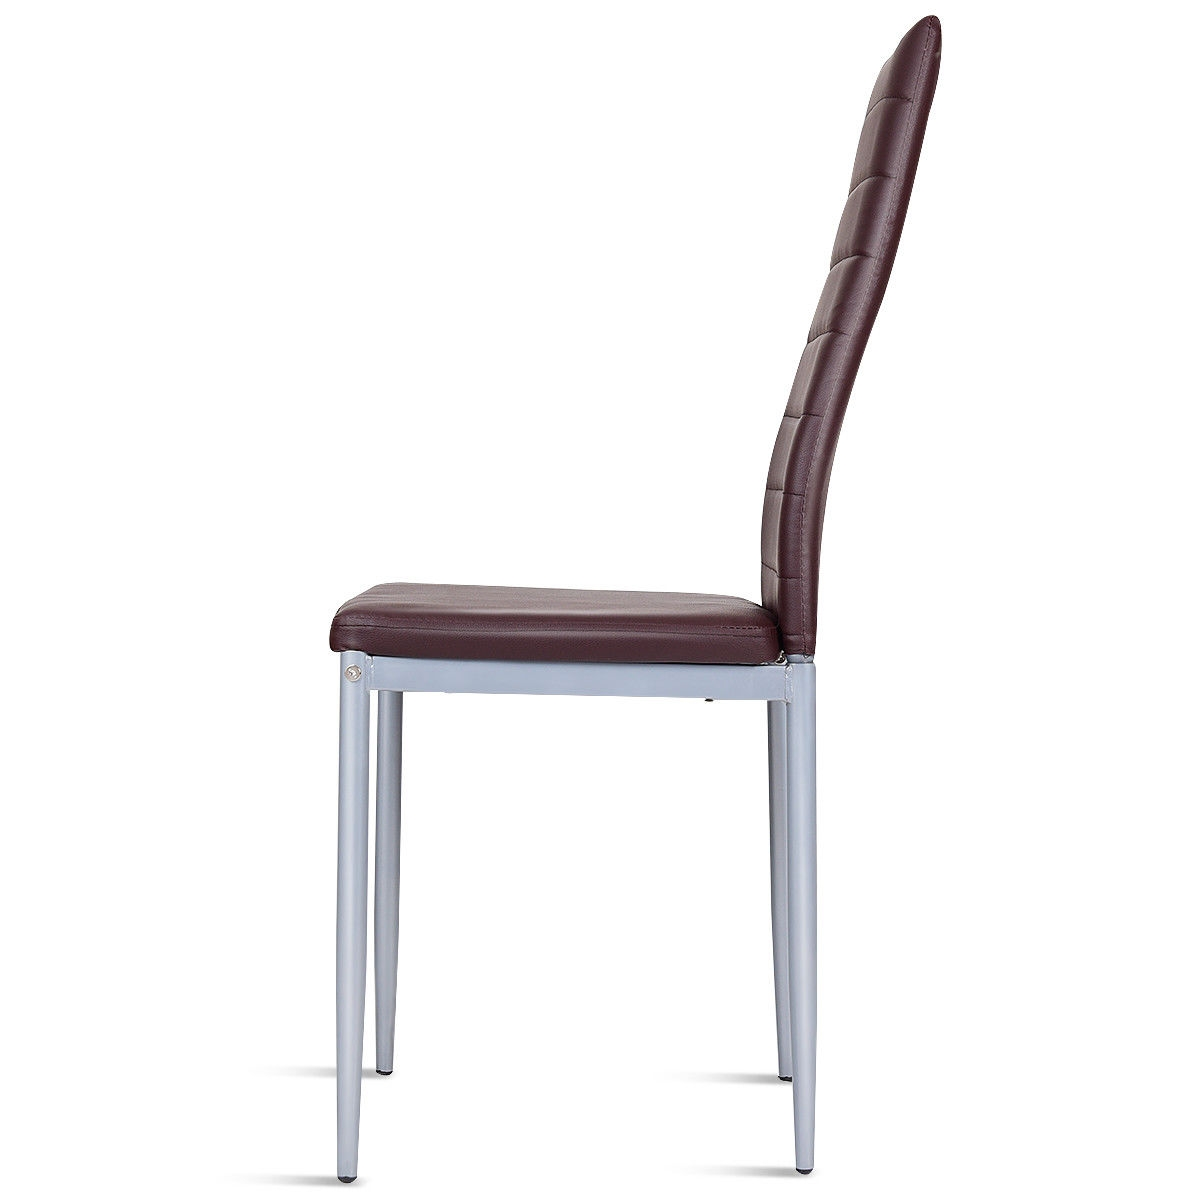 4 pcs PVC Leather Dining Side Chairs Elegant Design